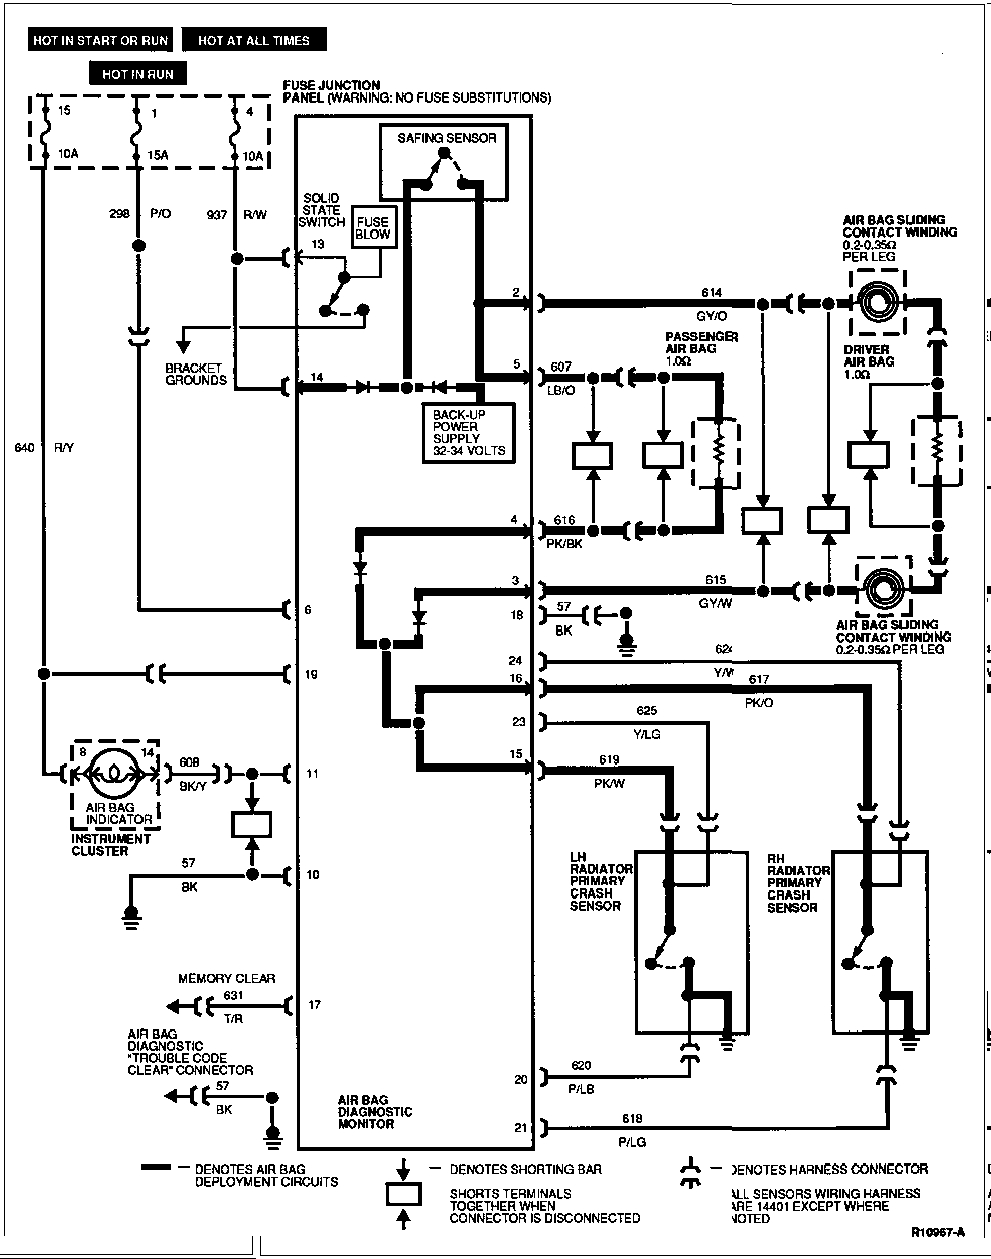 hight resolution of 94 aerostar fuse diagram 94 free engine image for user 1992 aerostar van 94 aerostar two